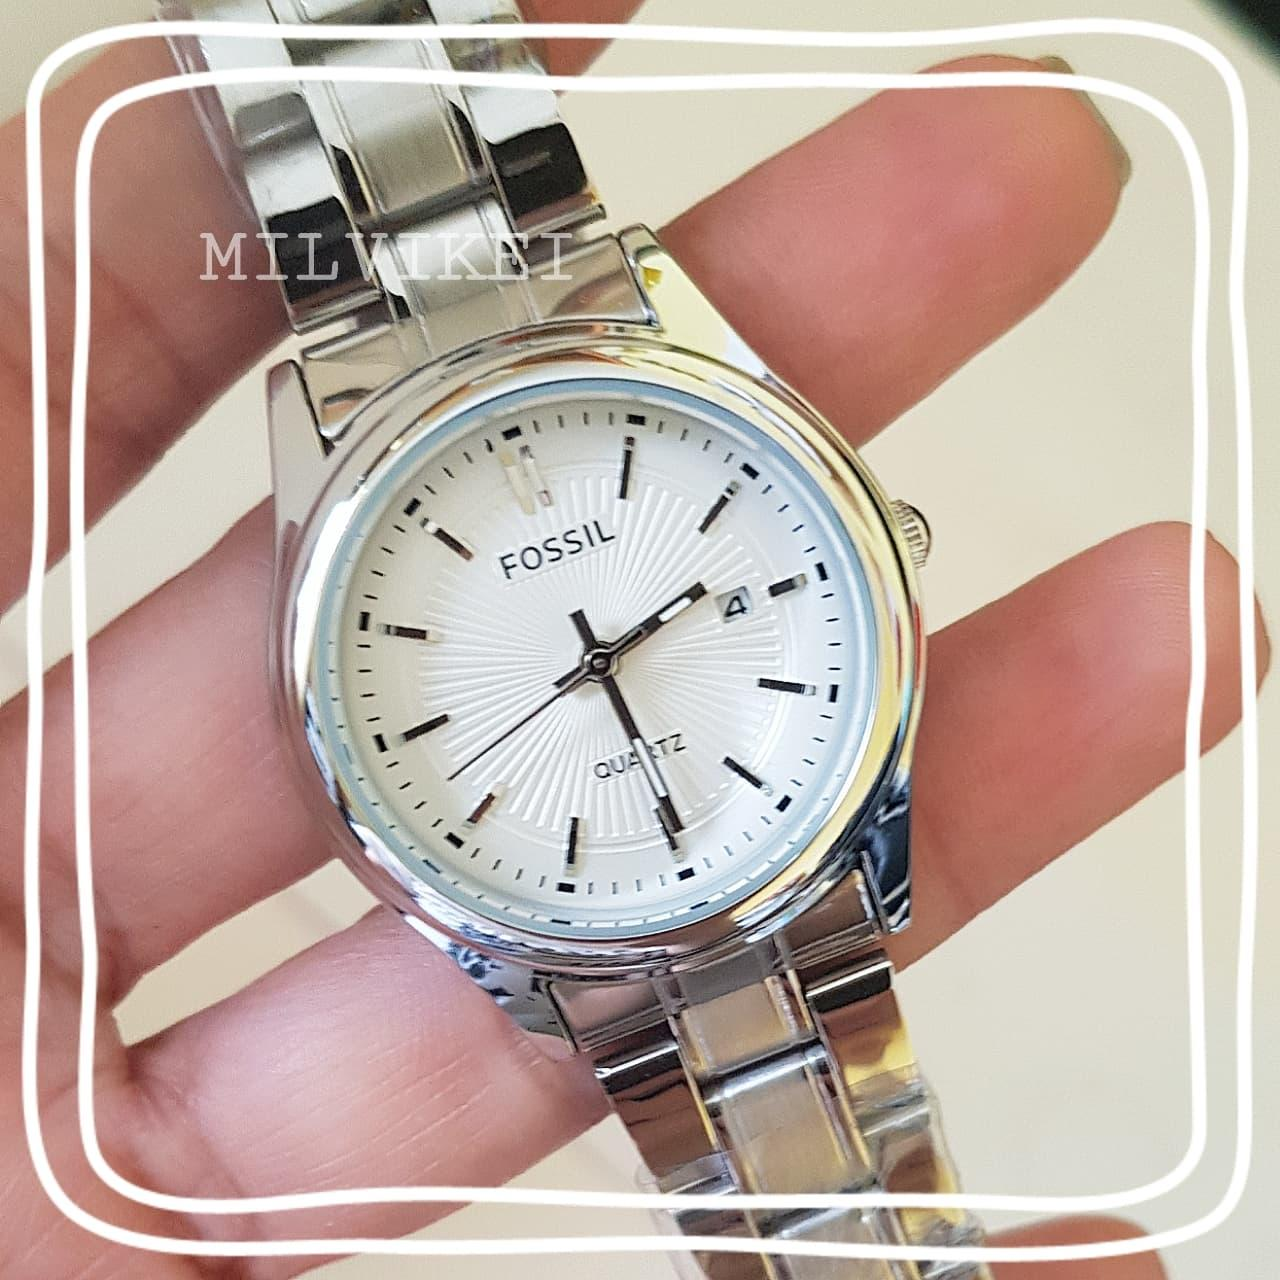 f4884c746b3 Sale Now!! Fossil Automatic Hand Movement With Calendar Display Small Dial  Watch